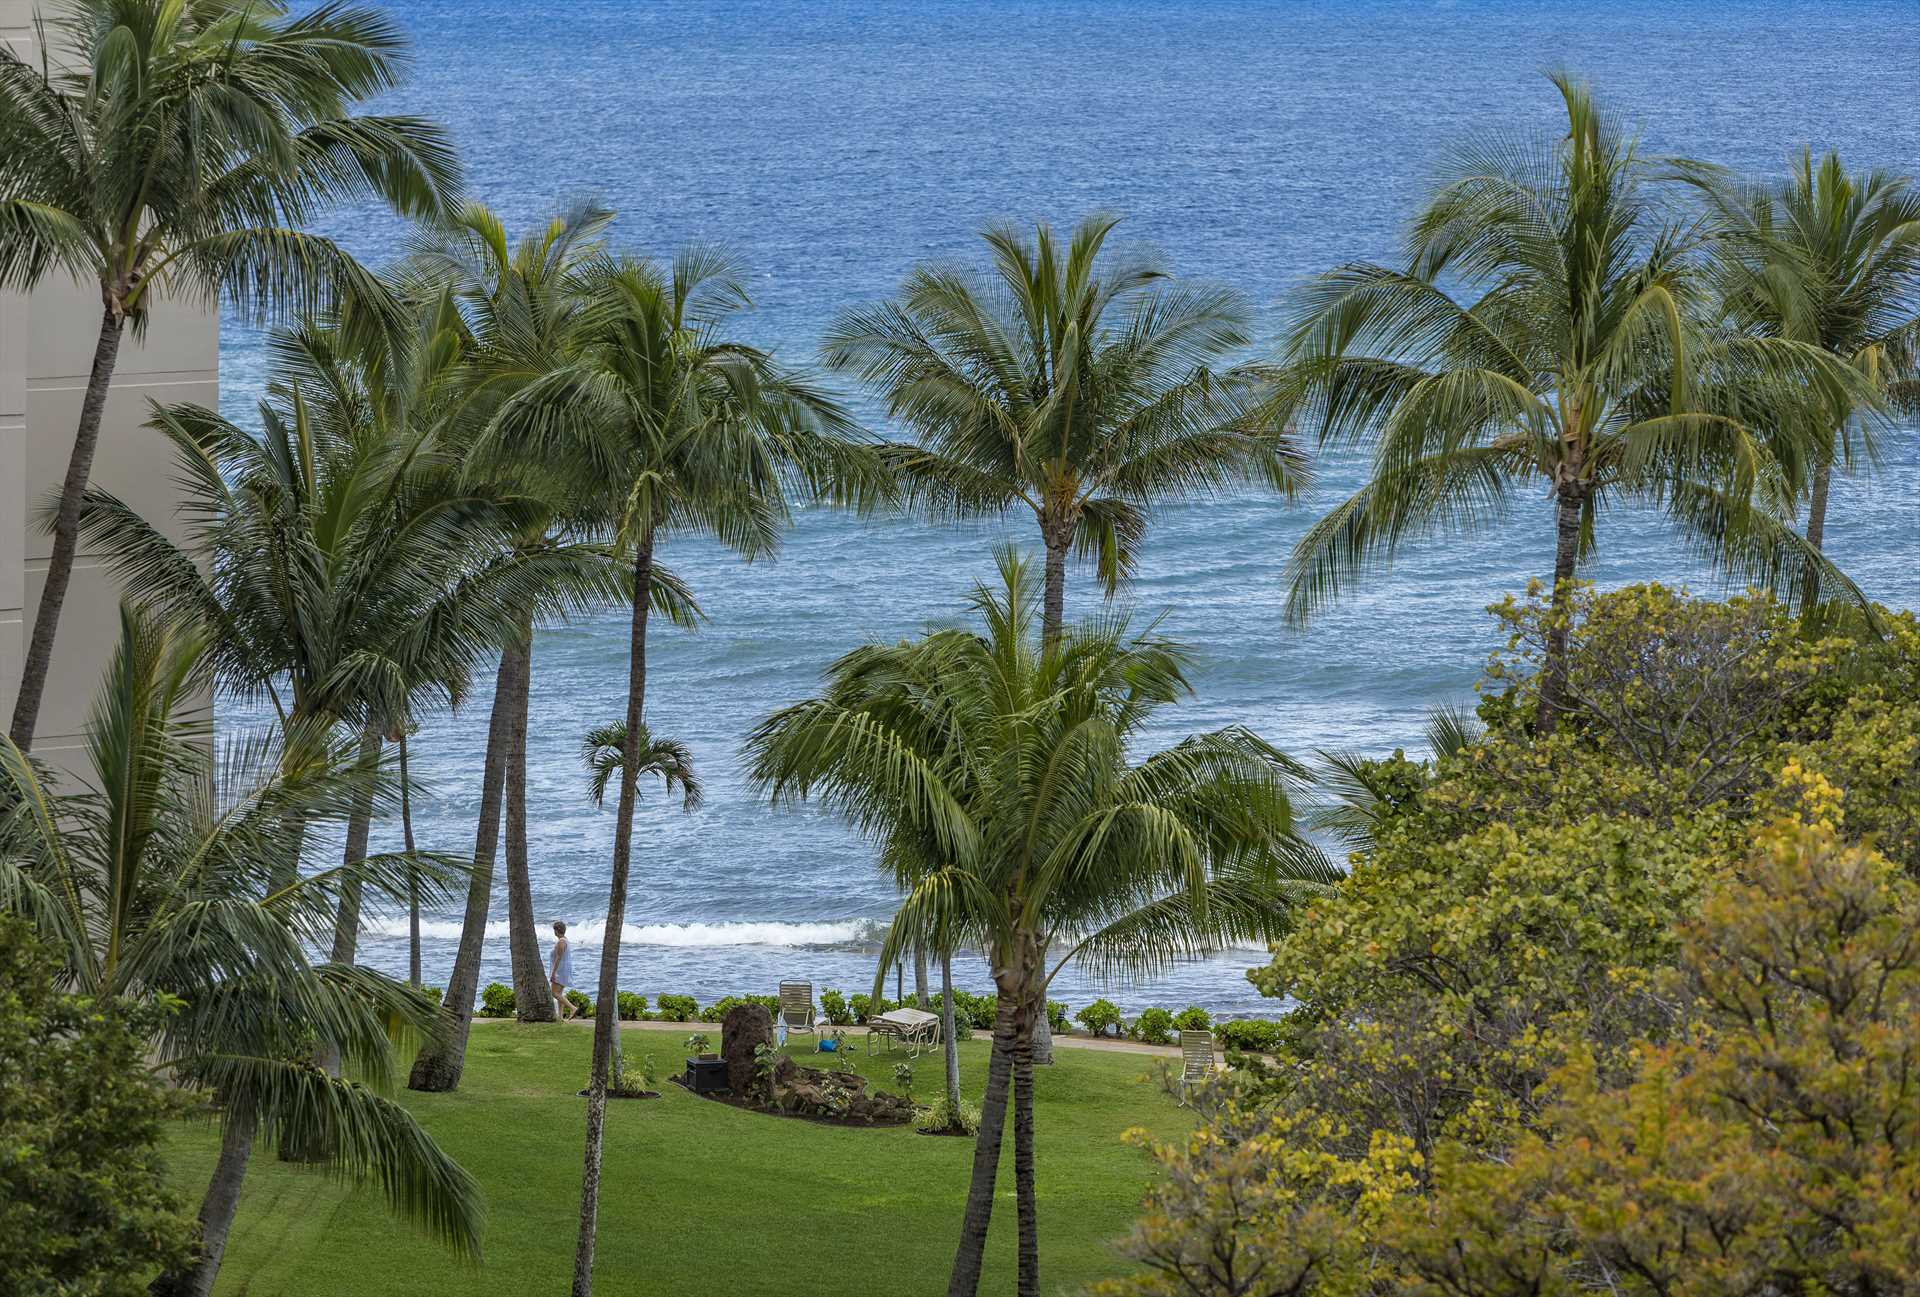 Kaanapali Shores is direct oceanfront property